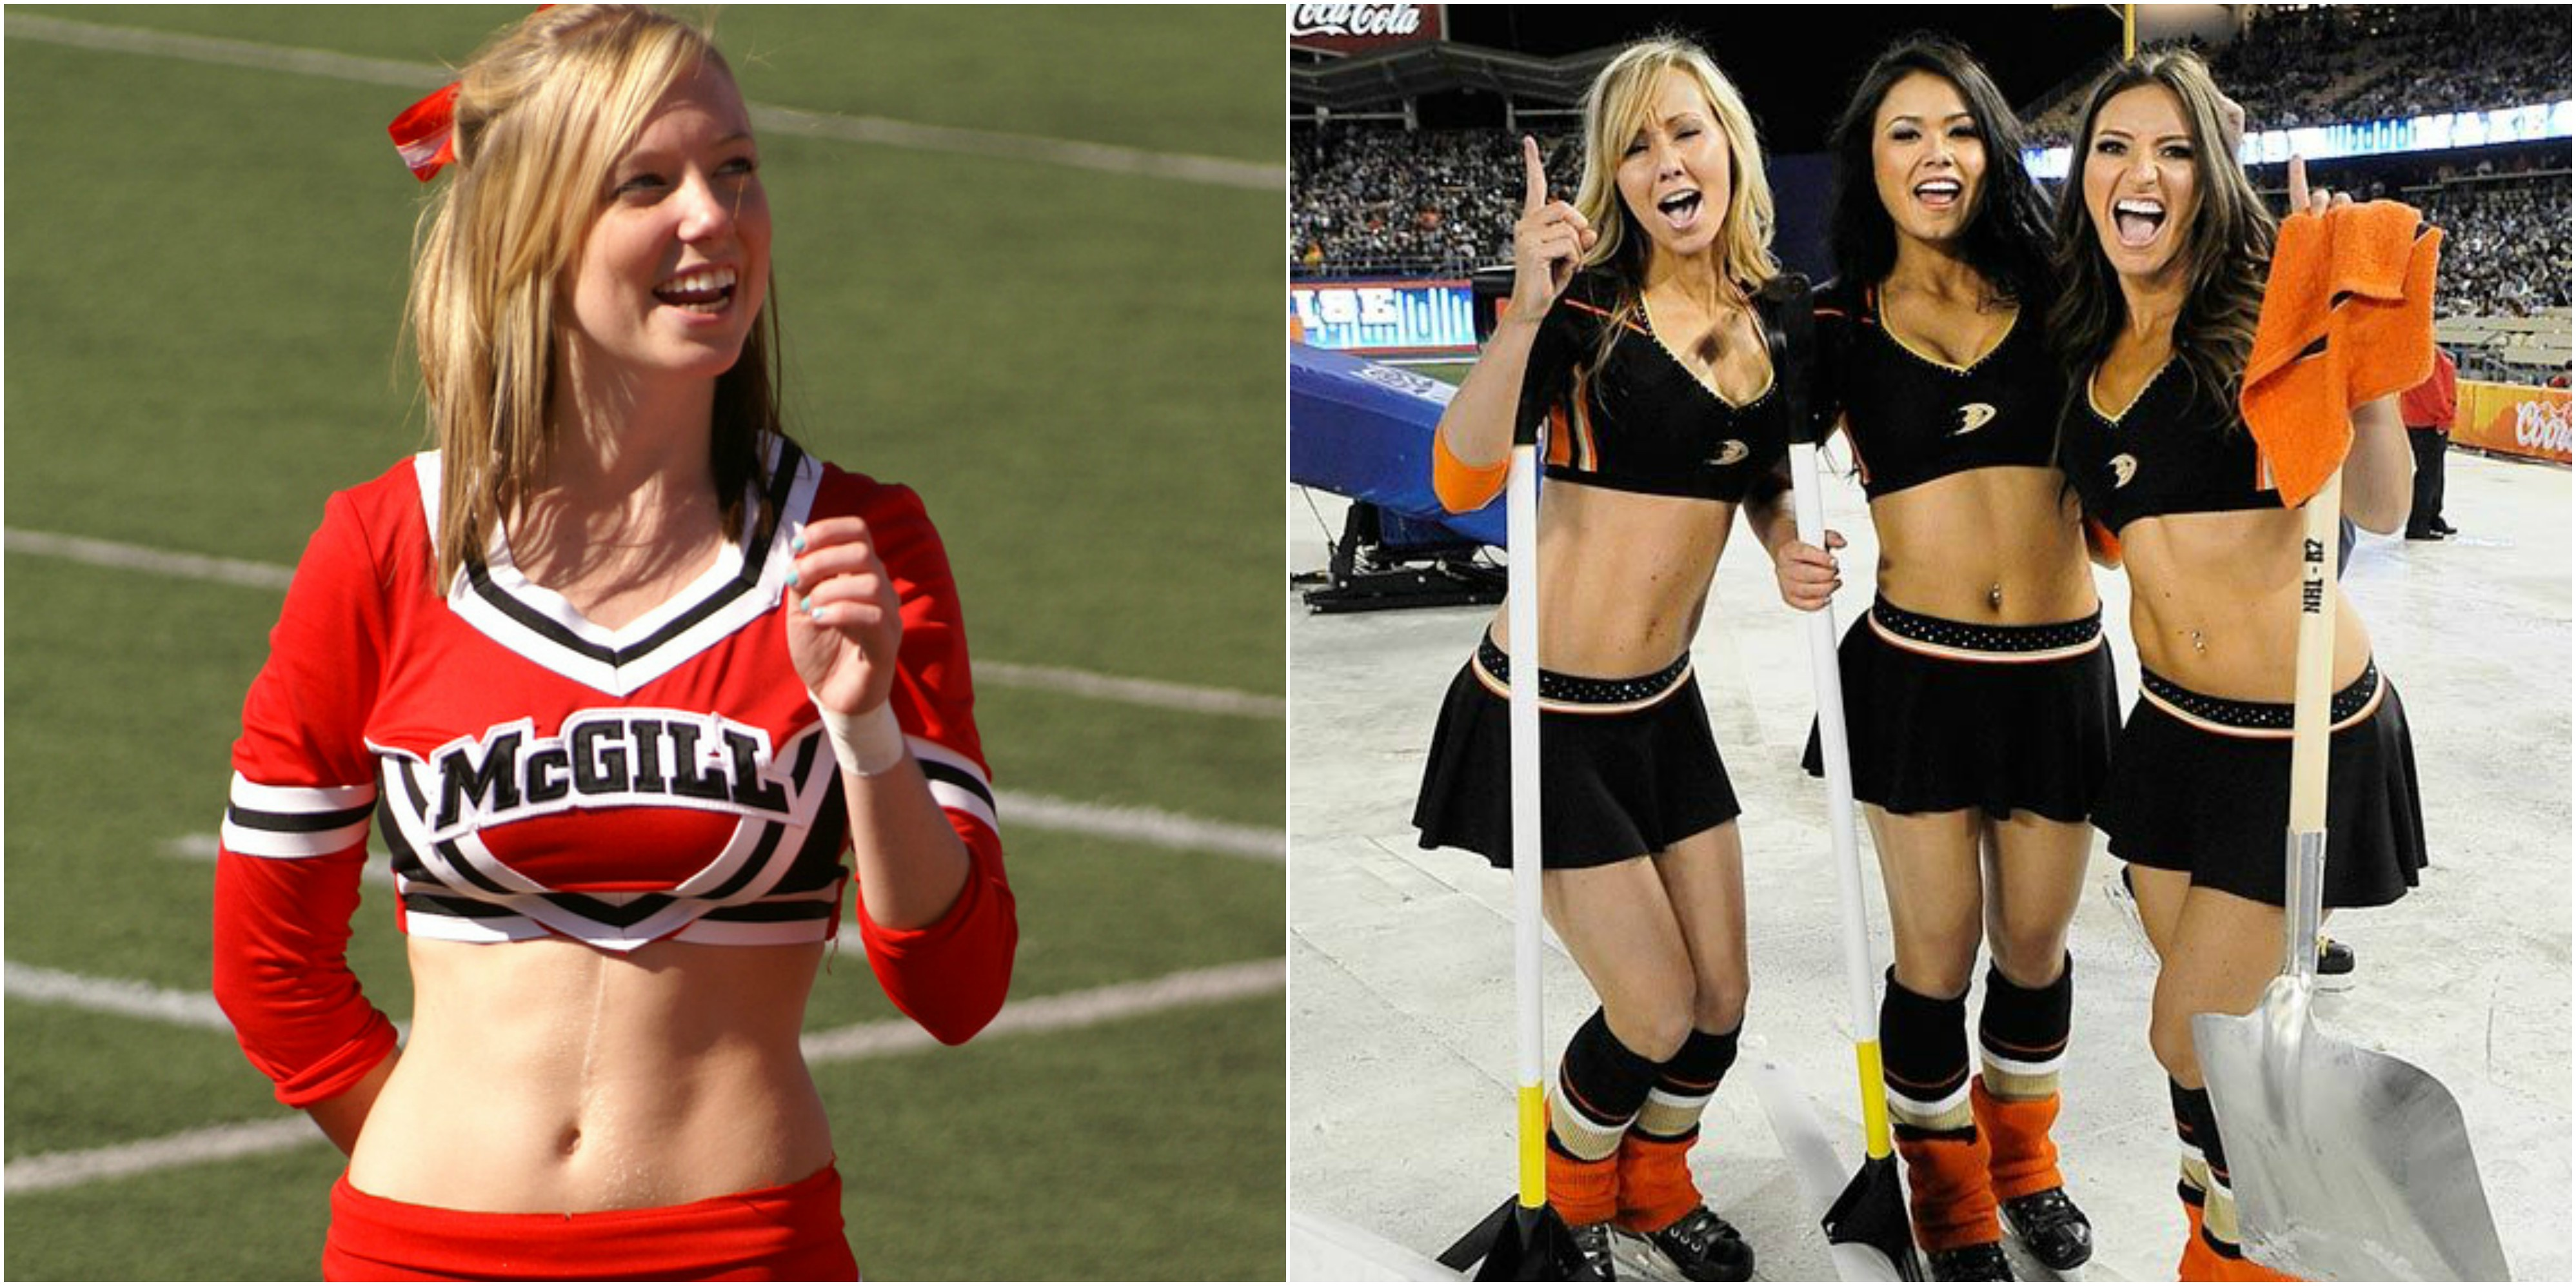 15 Universities In Canada With The Most Attractive Chicks